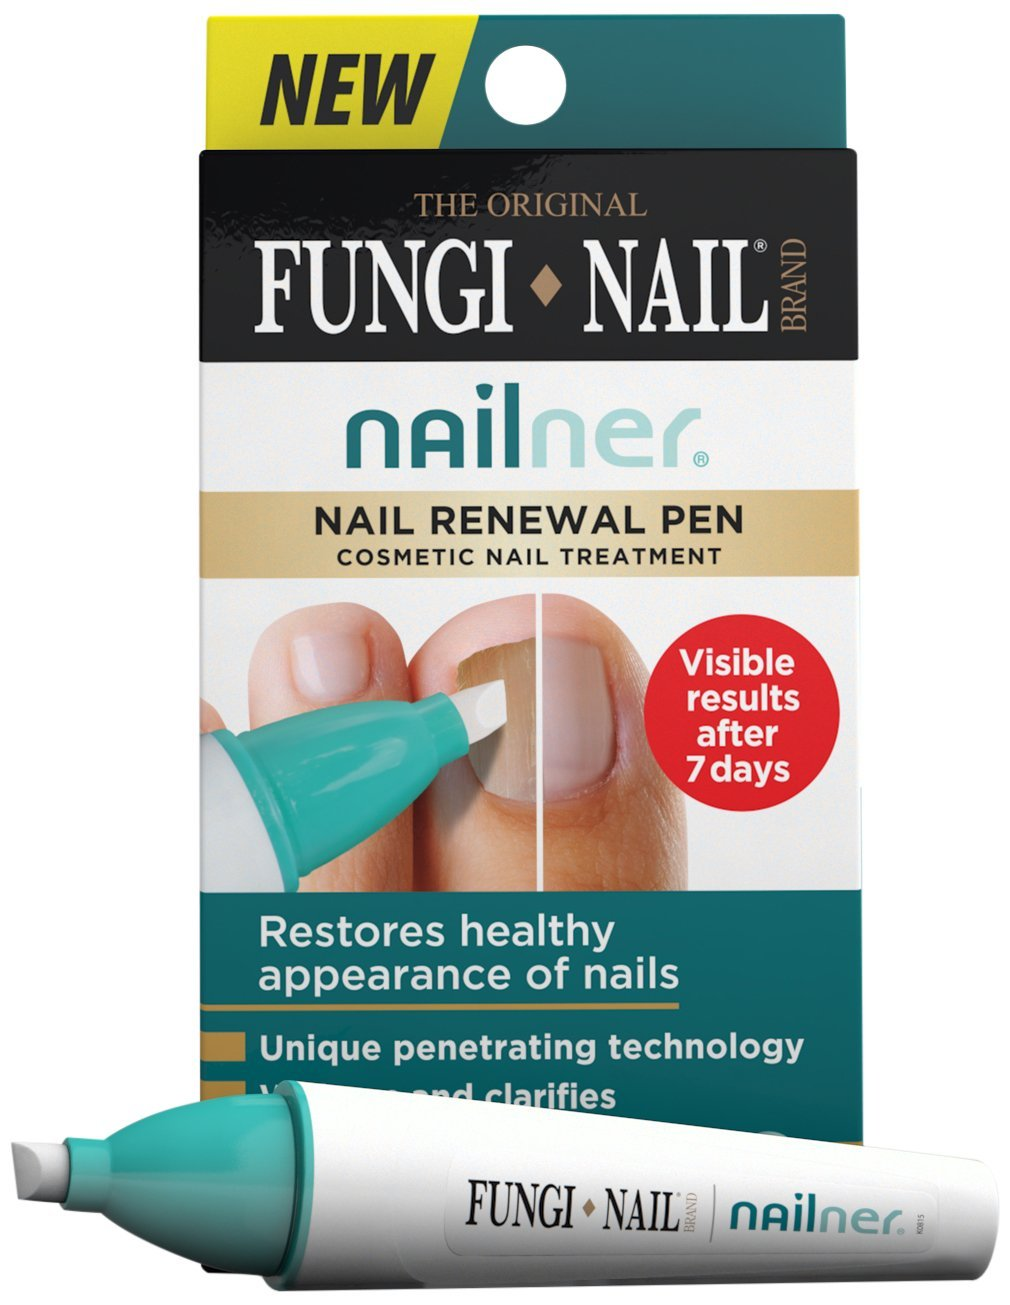 Fungi nail maximum strength reviews nail ftempo for How to renew old nail polish